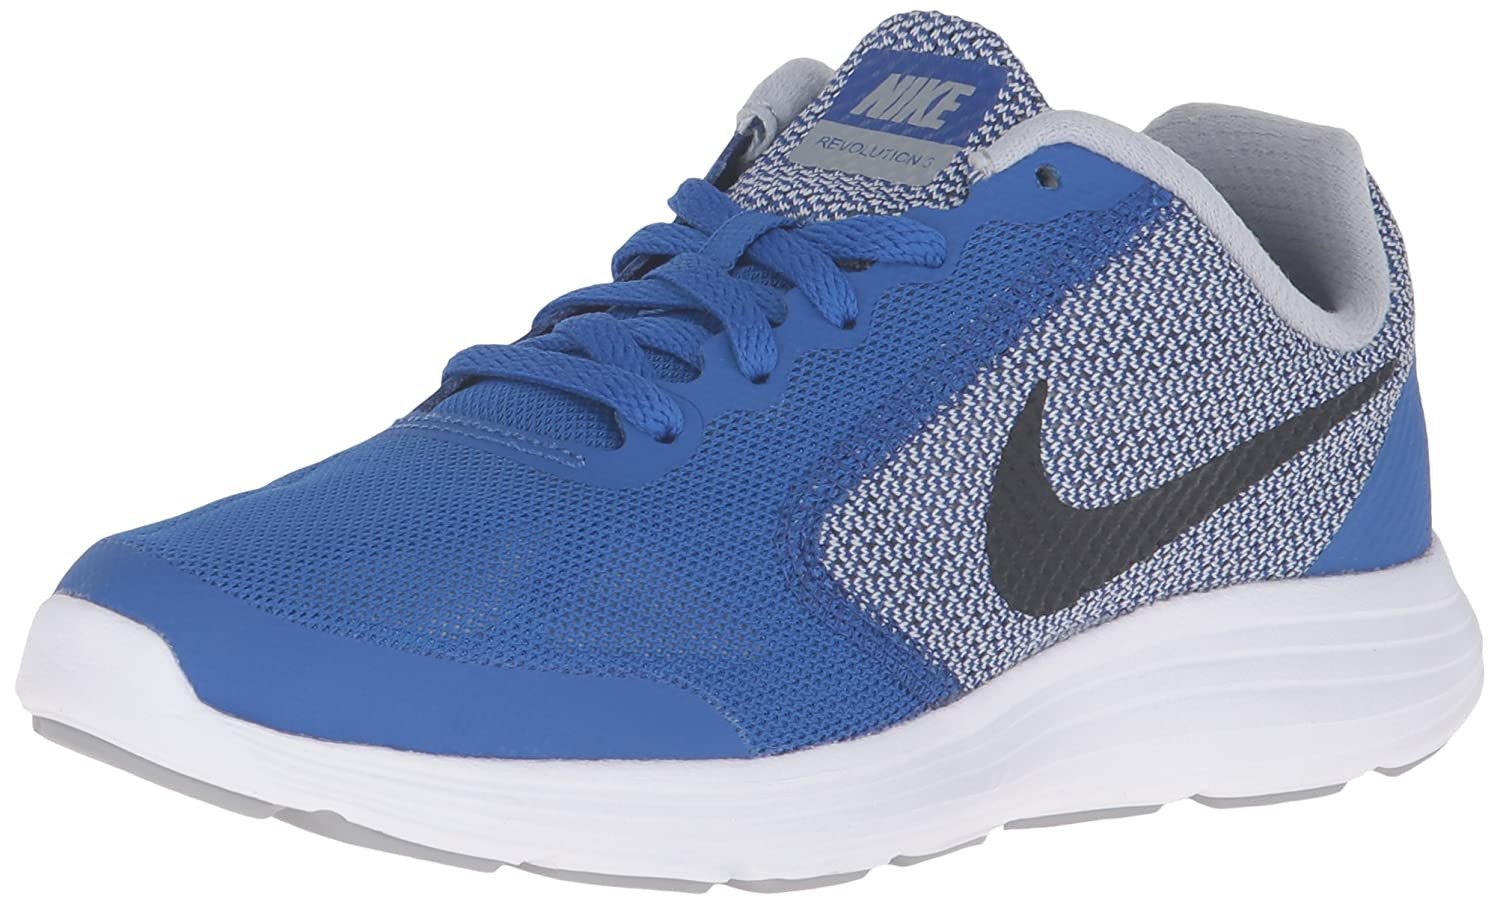 NIKE ' Revolution 3 (GS) Running Shoes B01A1IJOP2 6.5 M US Big Kid|Game Royal/Black/Wolf Grey/White